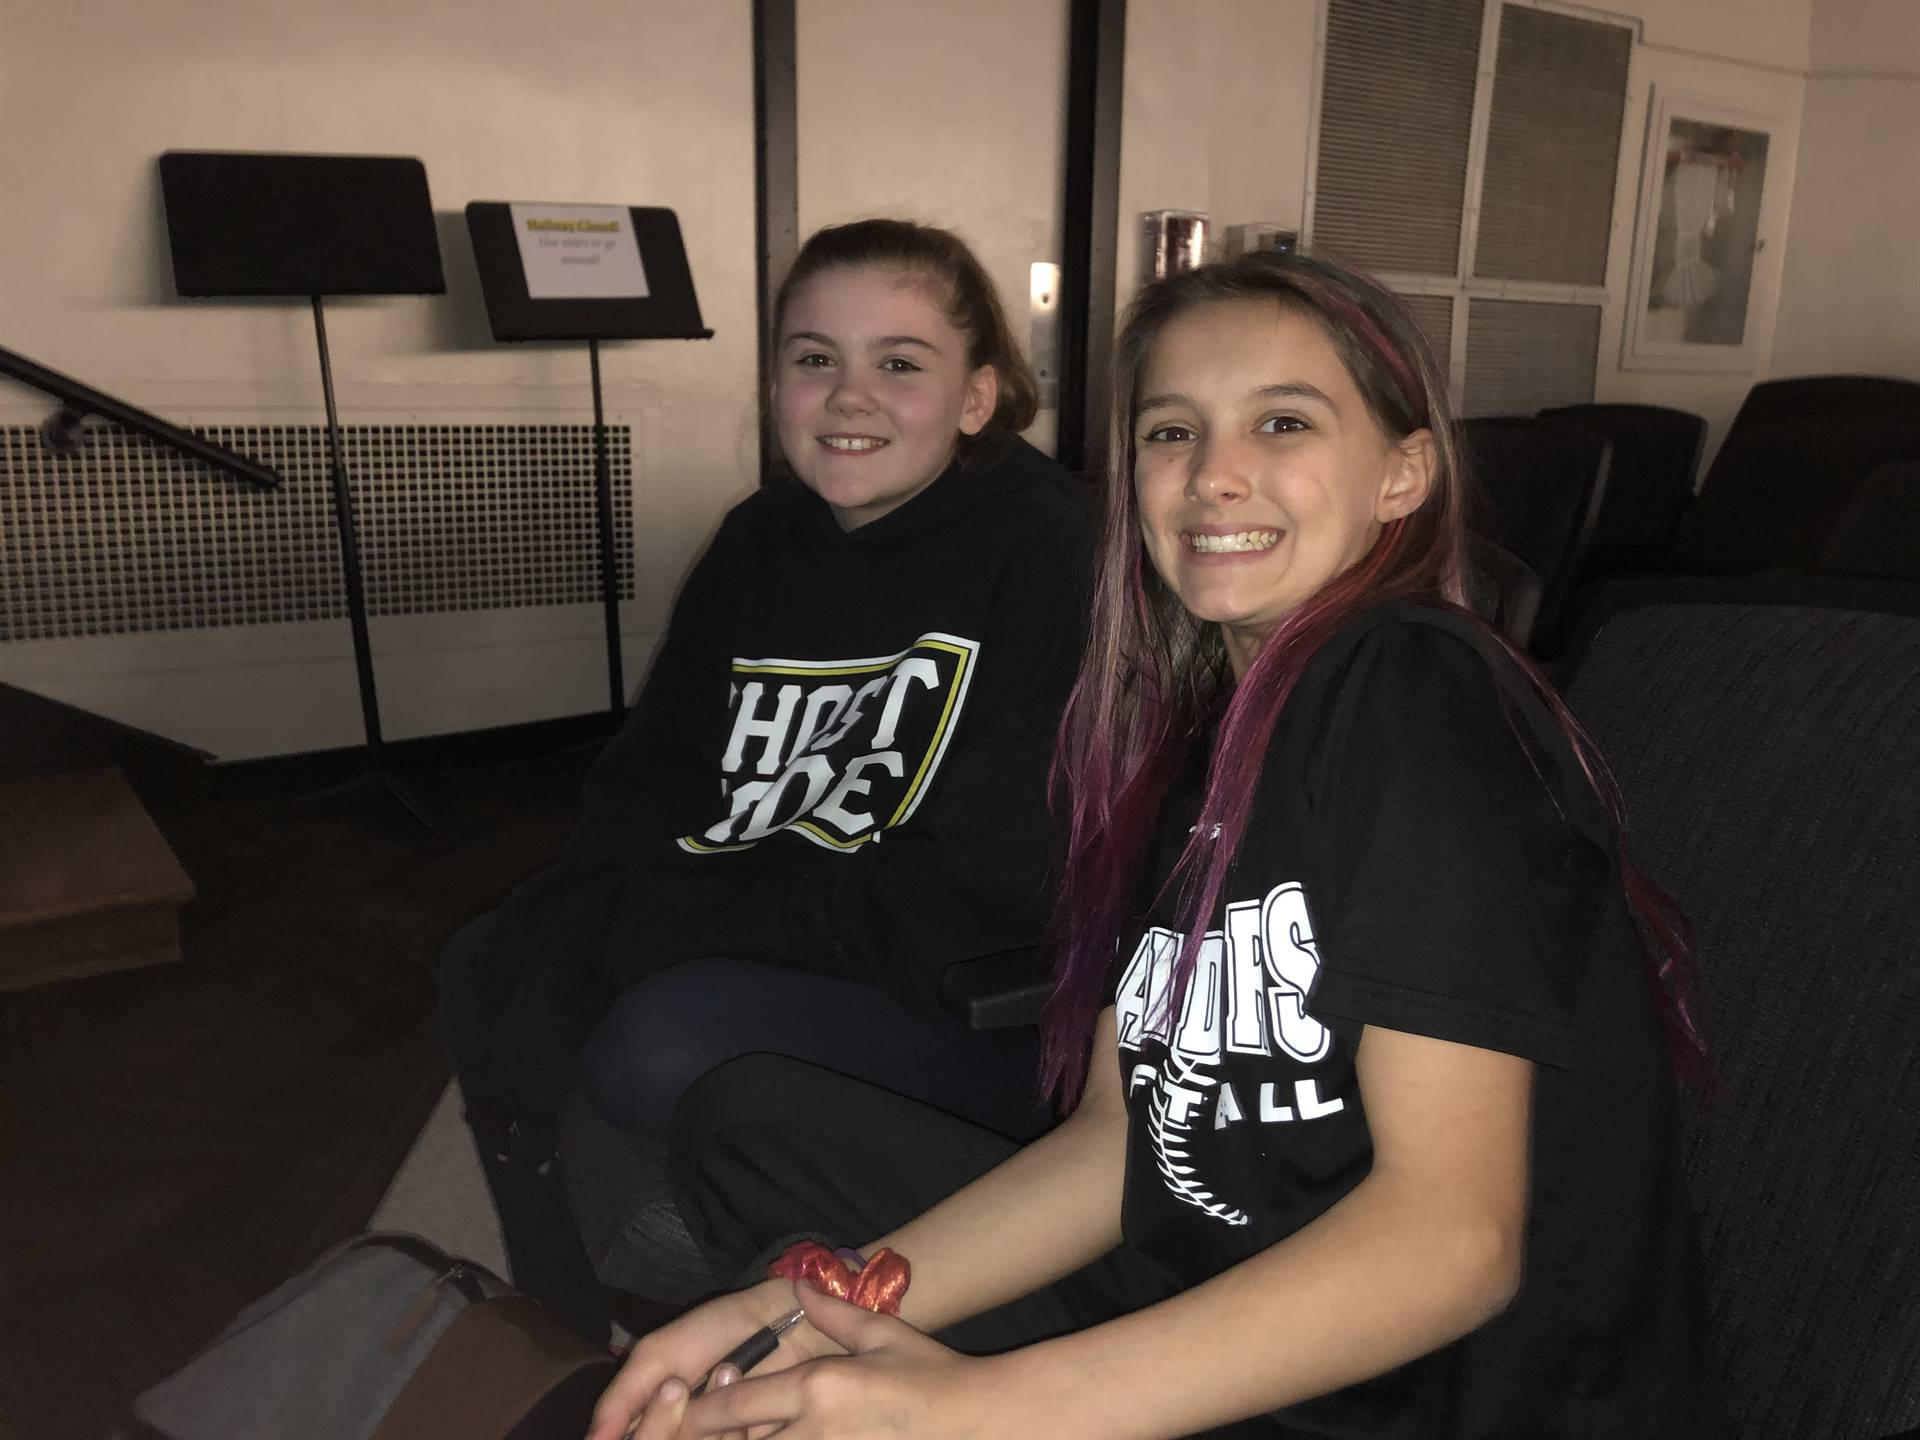 Two girls sitting in auditorium seats